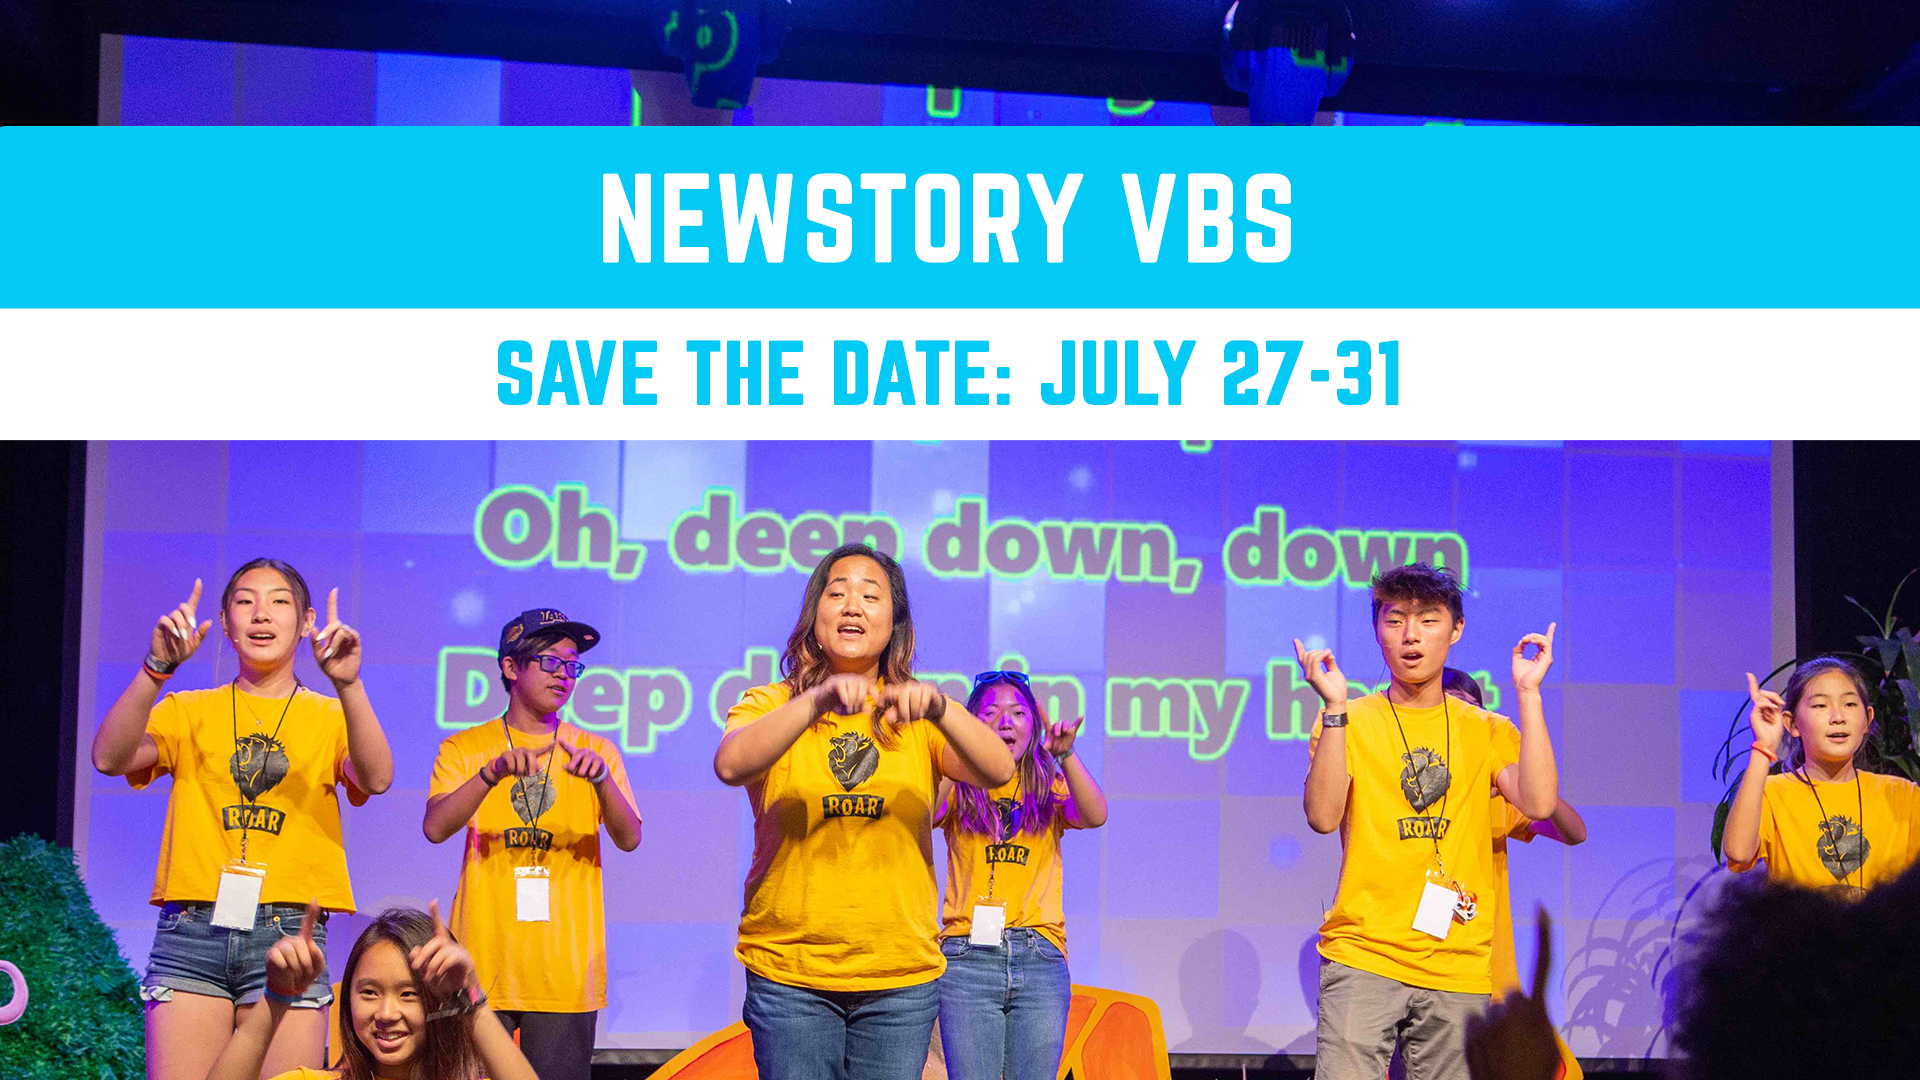 VBS-save-the-date